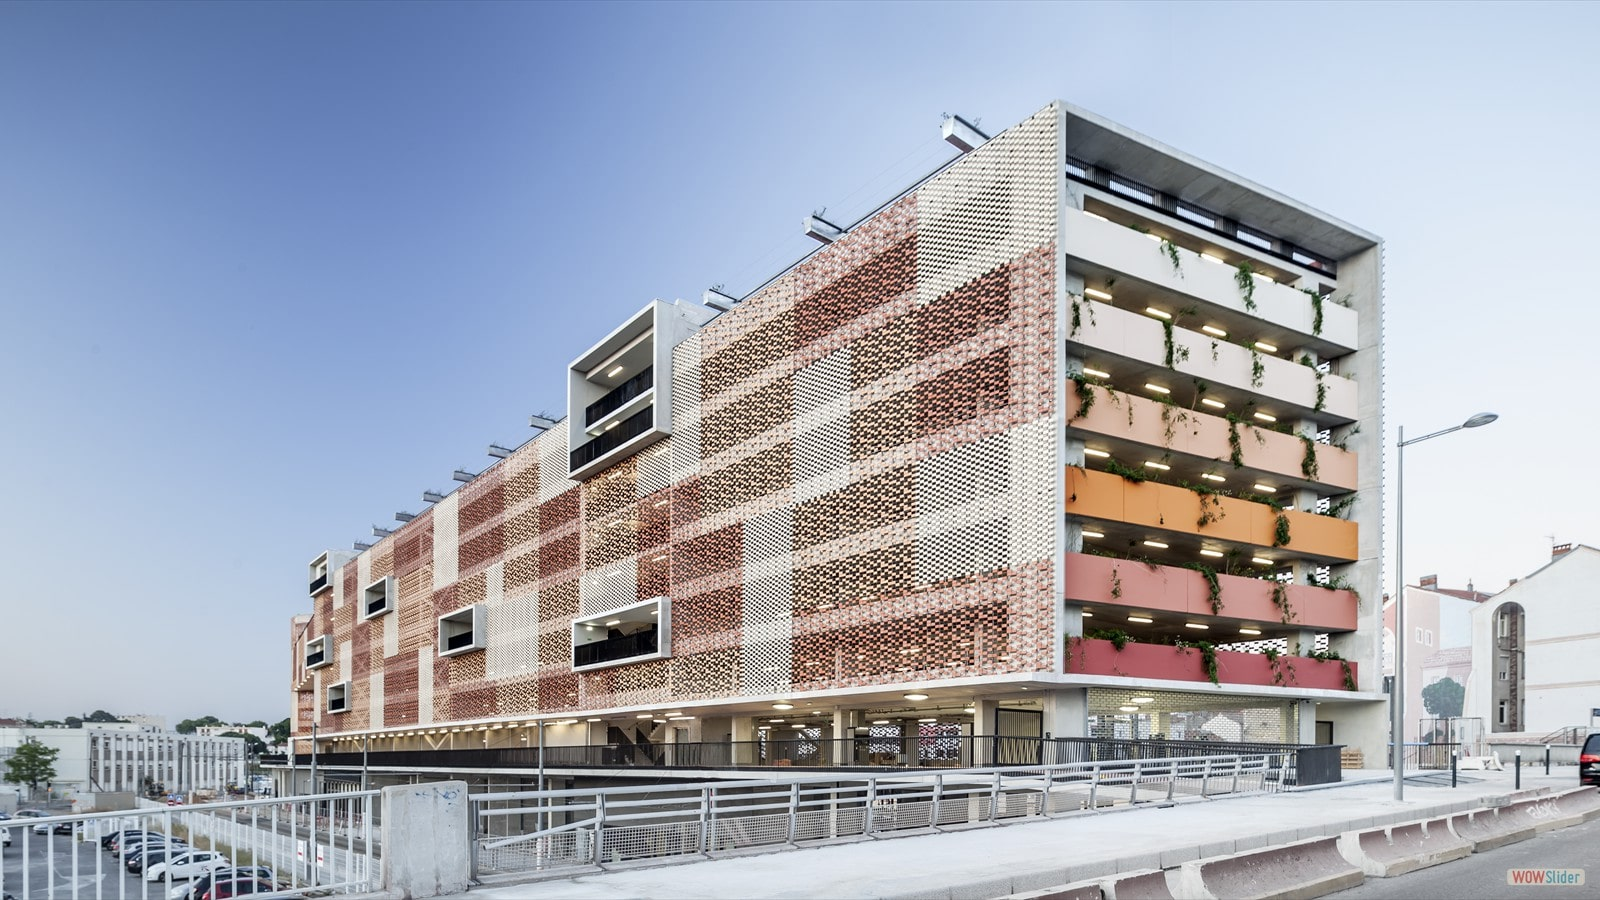 FLEXBRICK / Parking Saint Roch, France